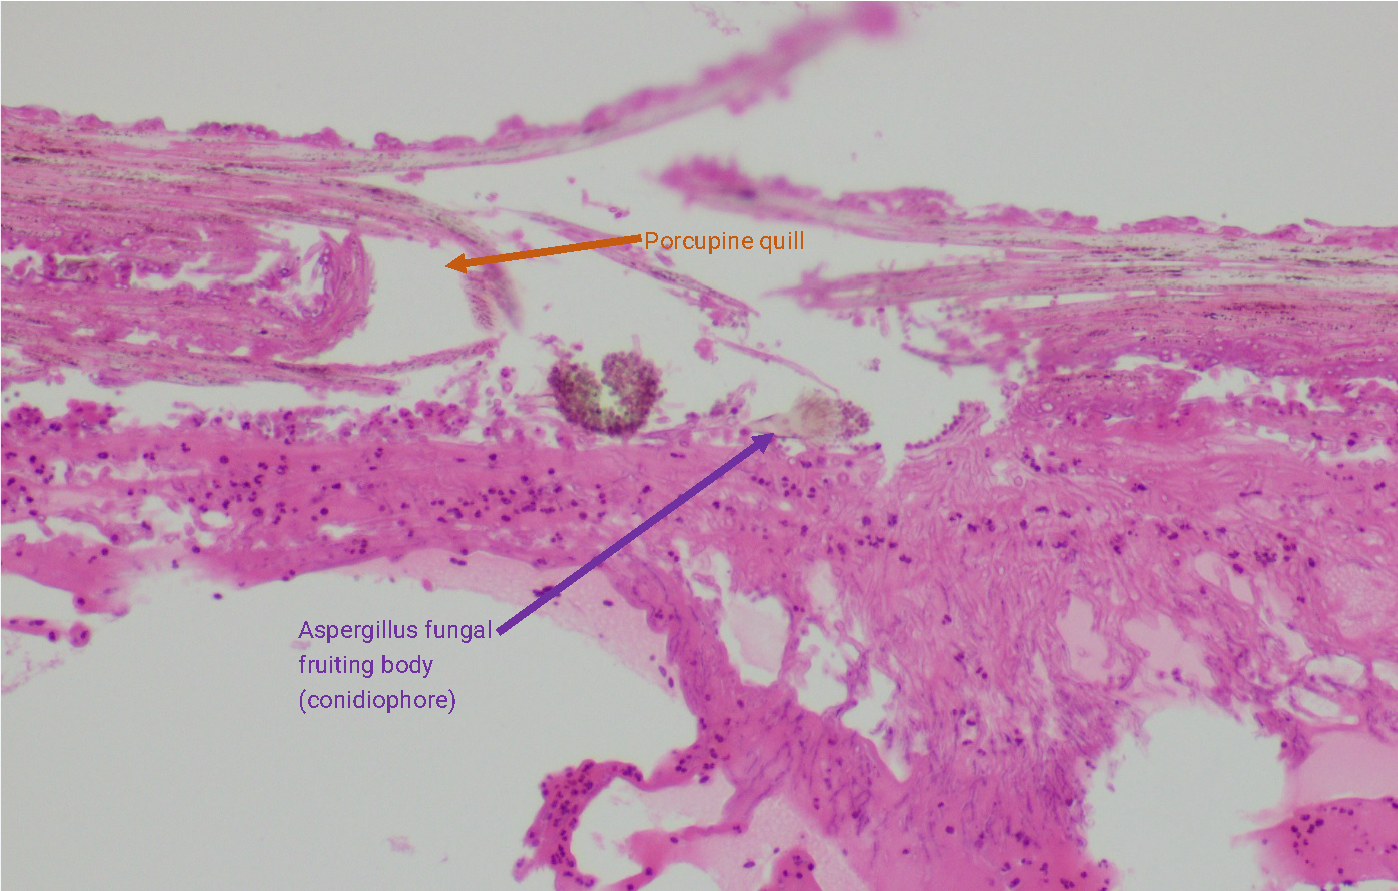 Histopathology slide with notation